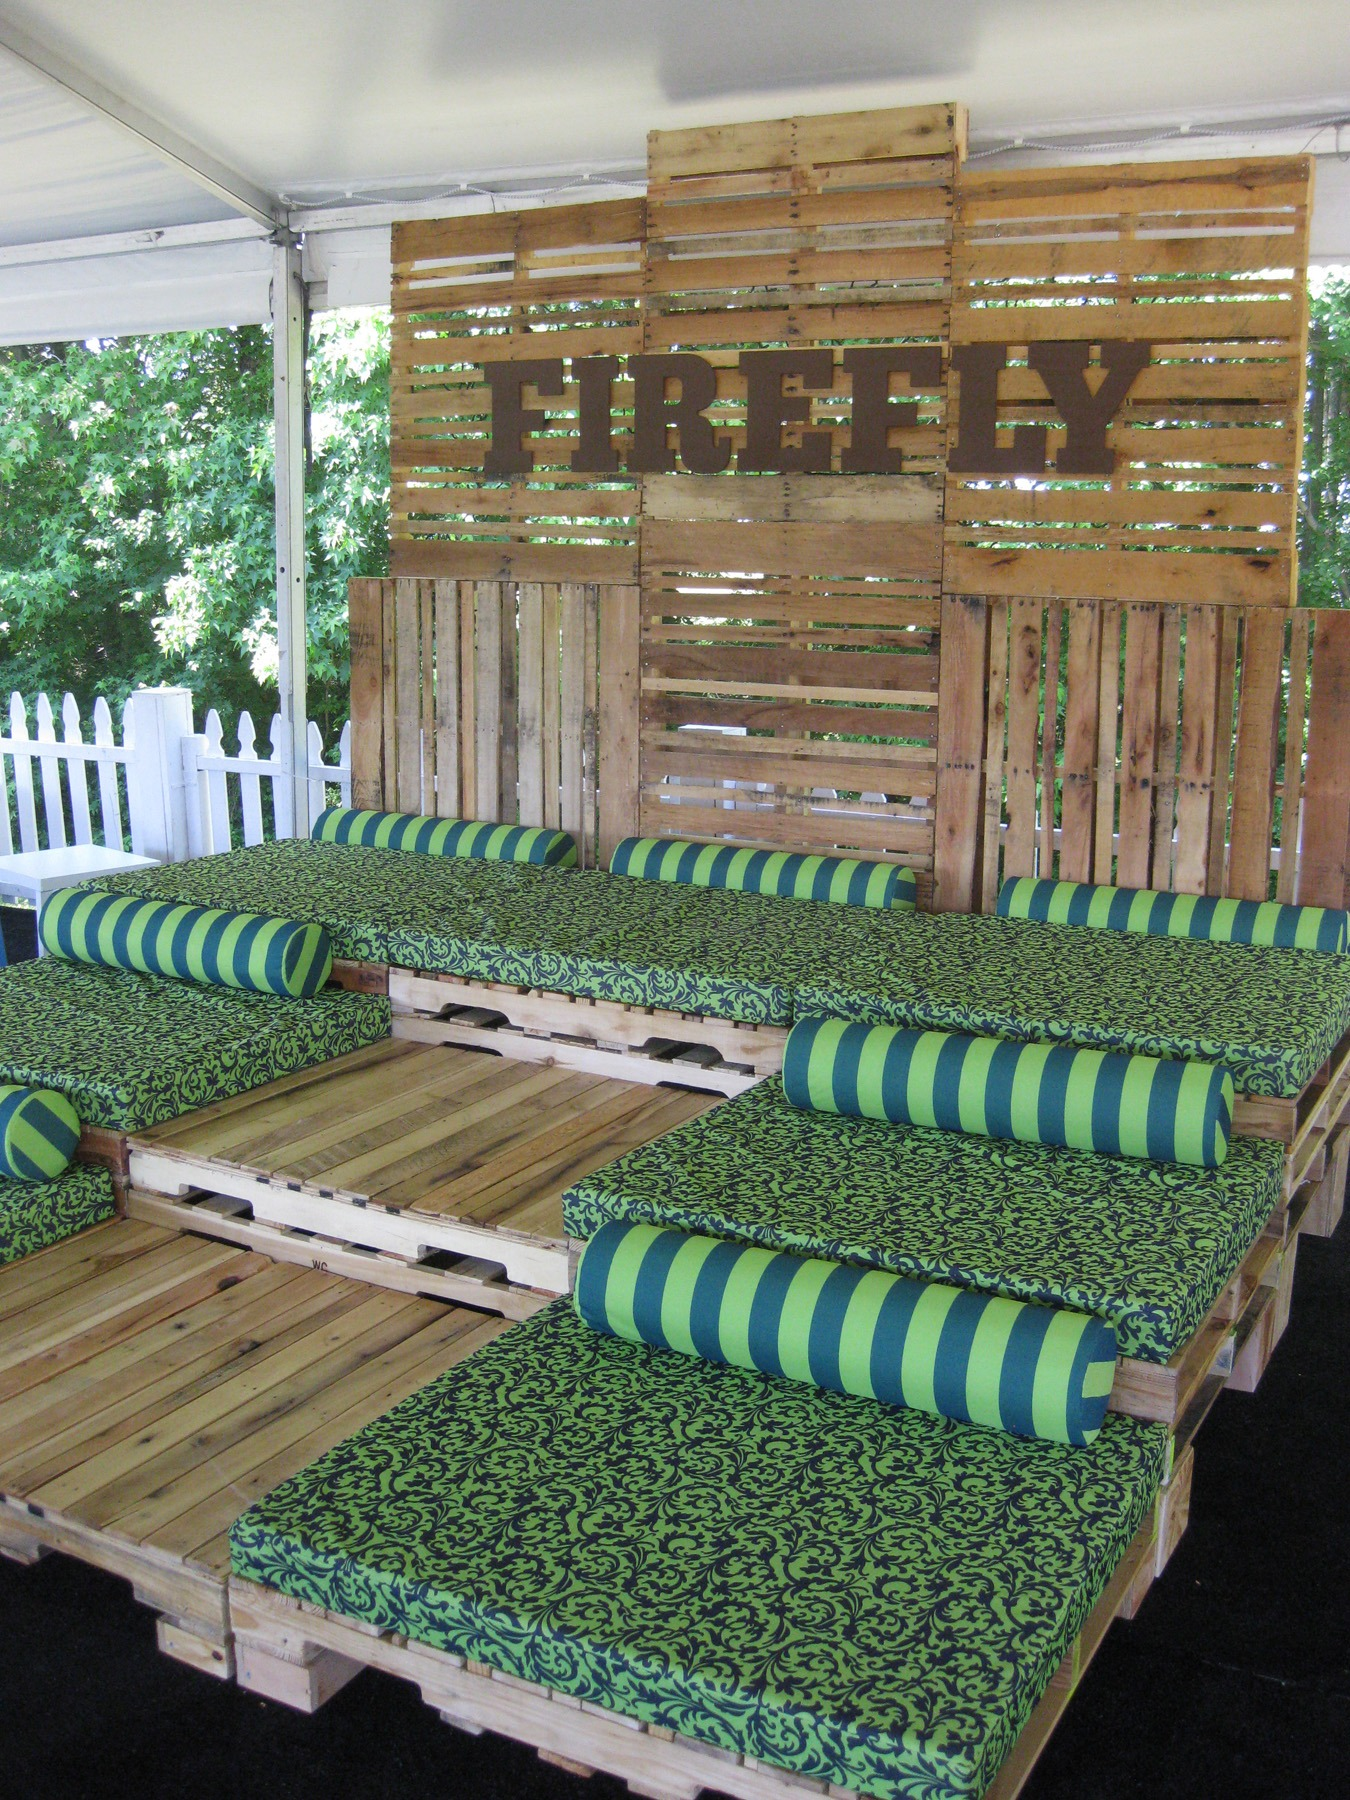 Firefly Pallet Seating On Vip Loft Ivan Carlson